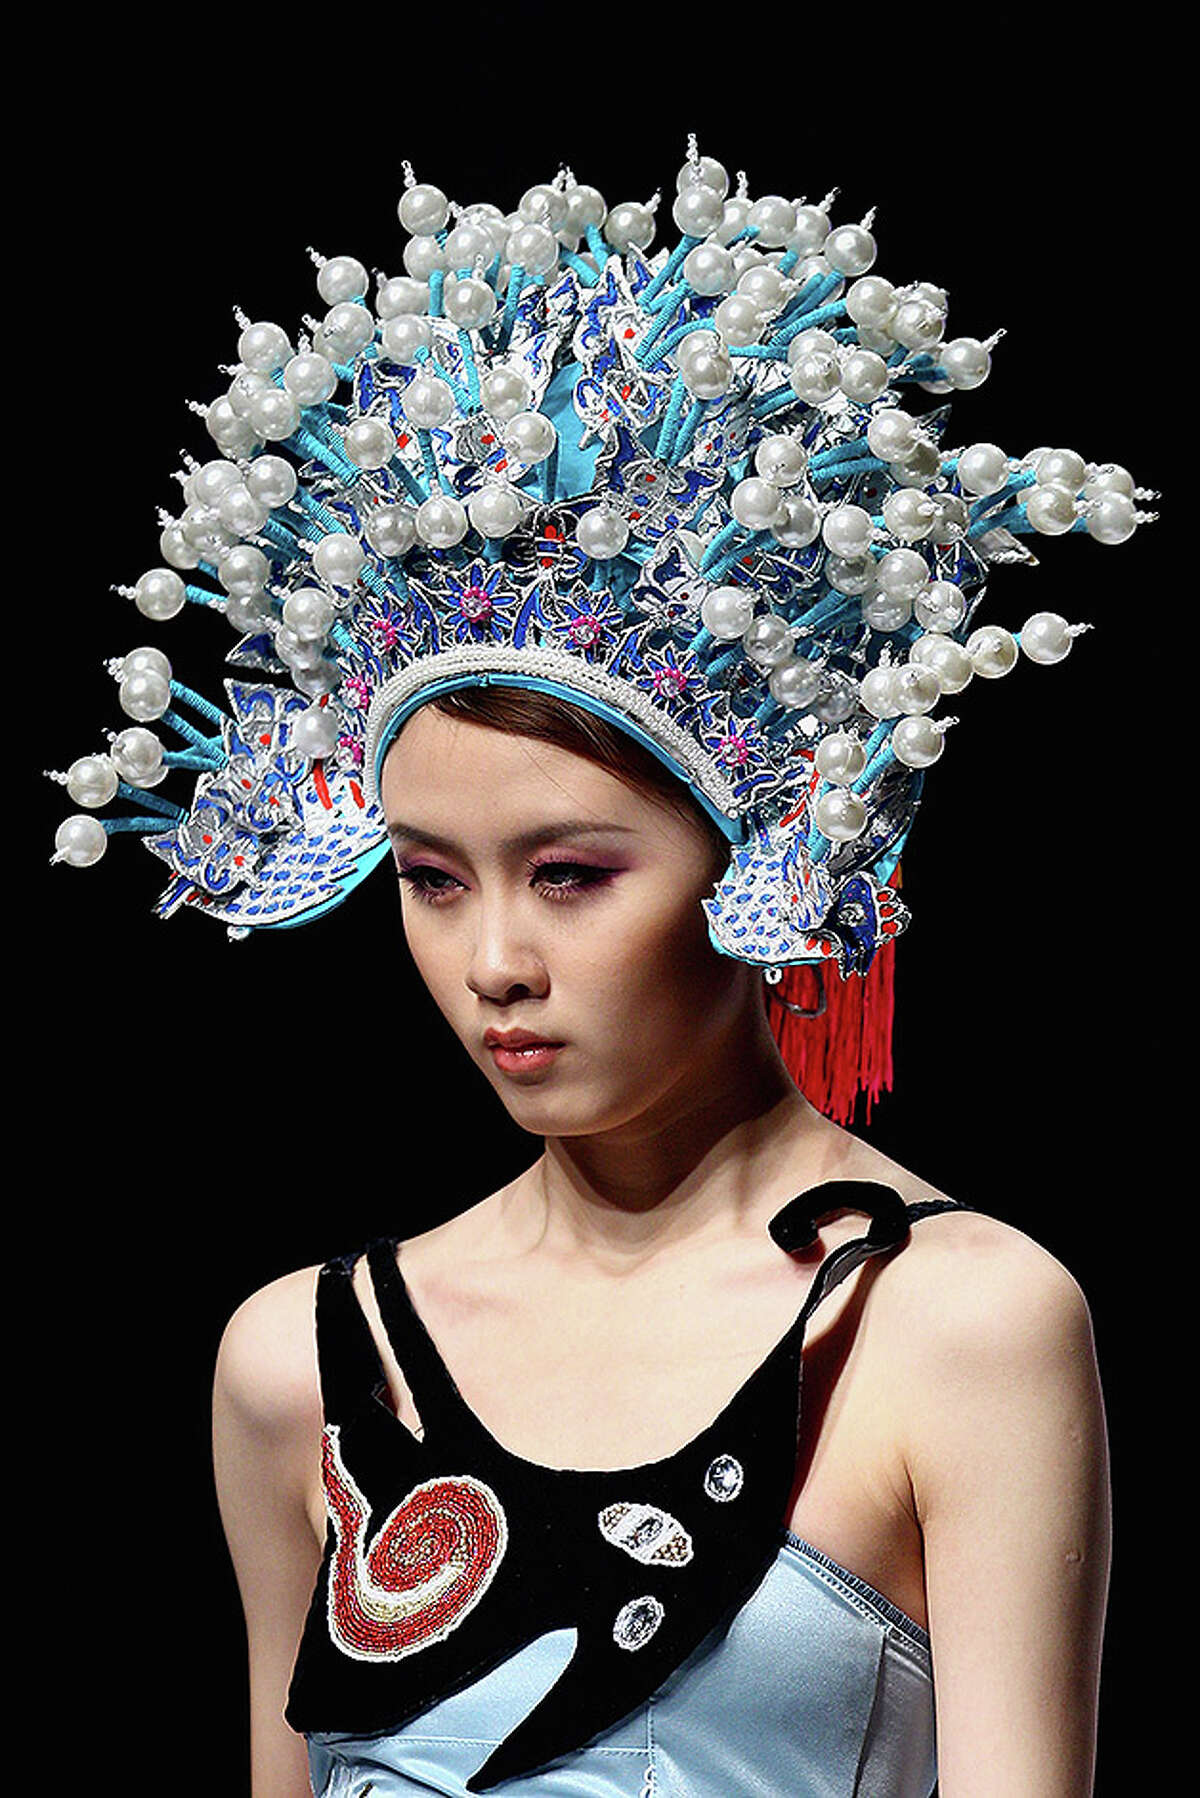 BEIJING - OCTOBER 28: A model walks the runway during Ordifen Cup China Lingerie Design Contest 2010 at China Fashion Week Spring/Summer 2011 on October 28, 2010 in Beijing, China. (Photo by Feng Li/Getty Images)